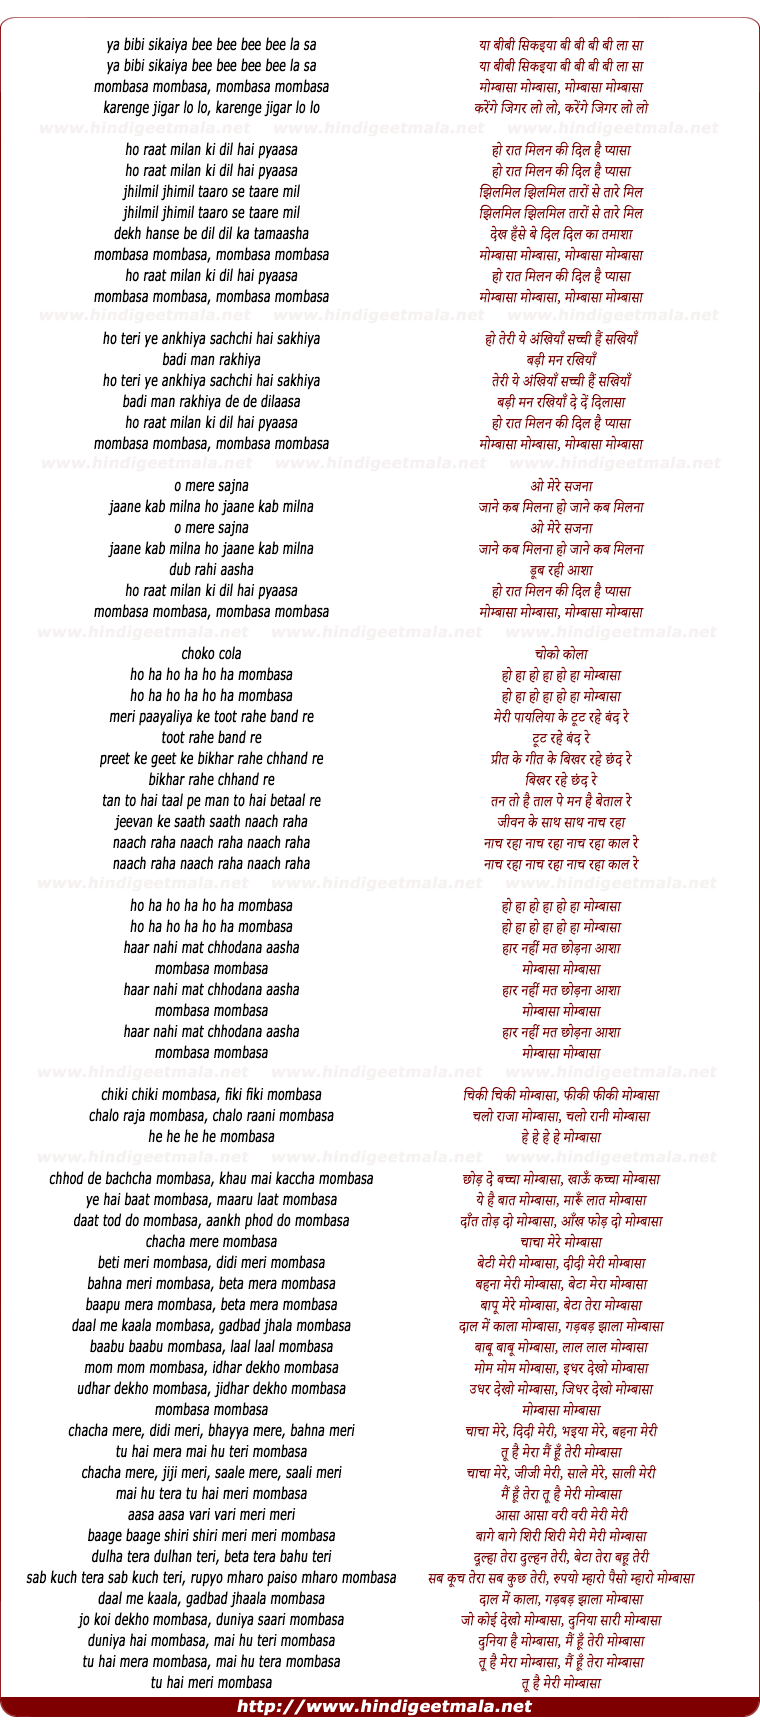 lyrics of song Yaa Bibi Sikaiyaa, Mombaasaa, Ho Raat Milan Ki